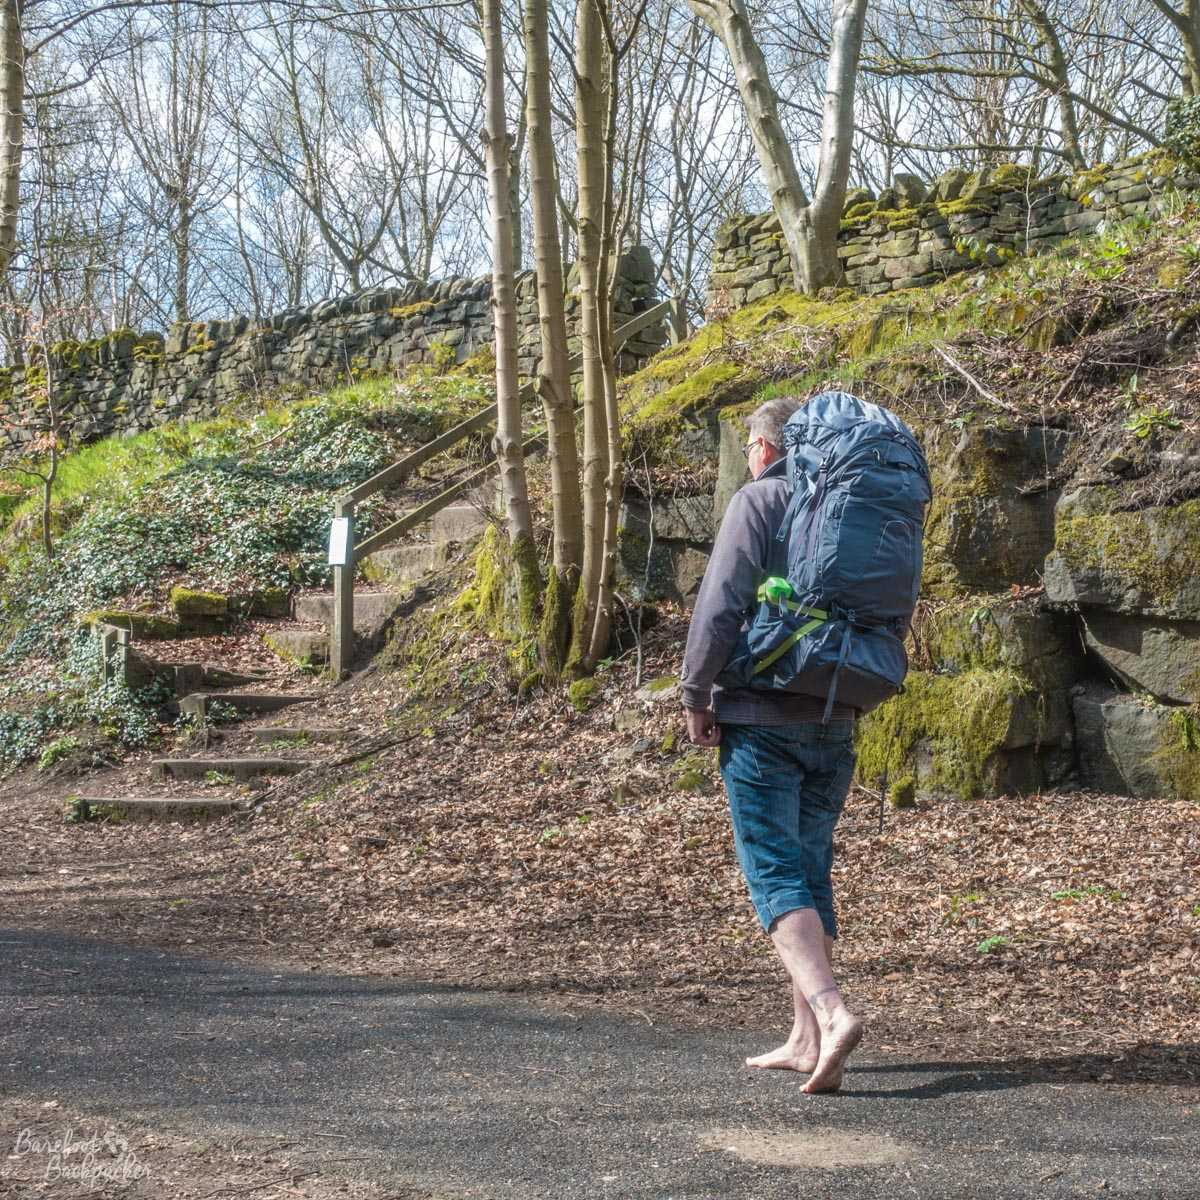 Hiking barefoot with a huge packpack along the Trans-Pennine Trail, near Penistone, Yorkshire